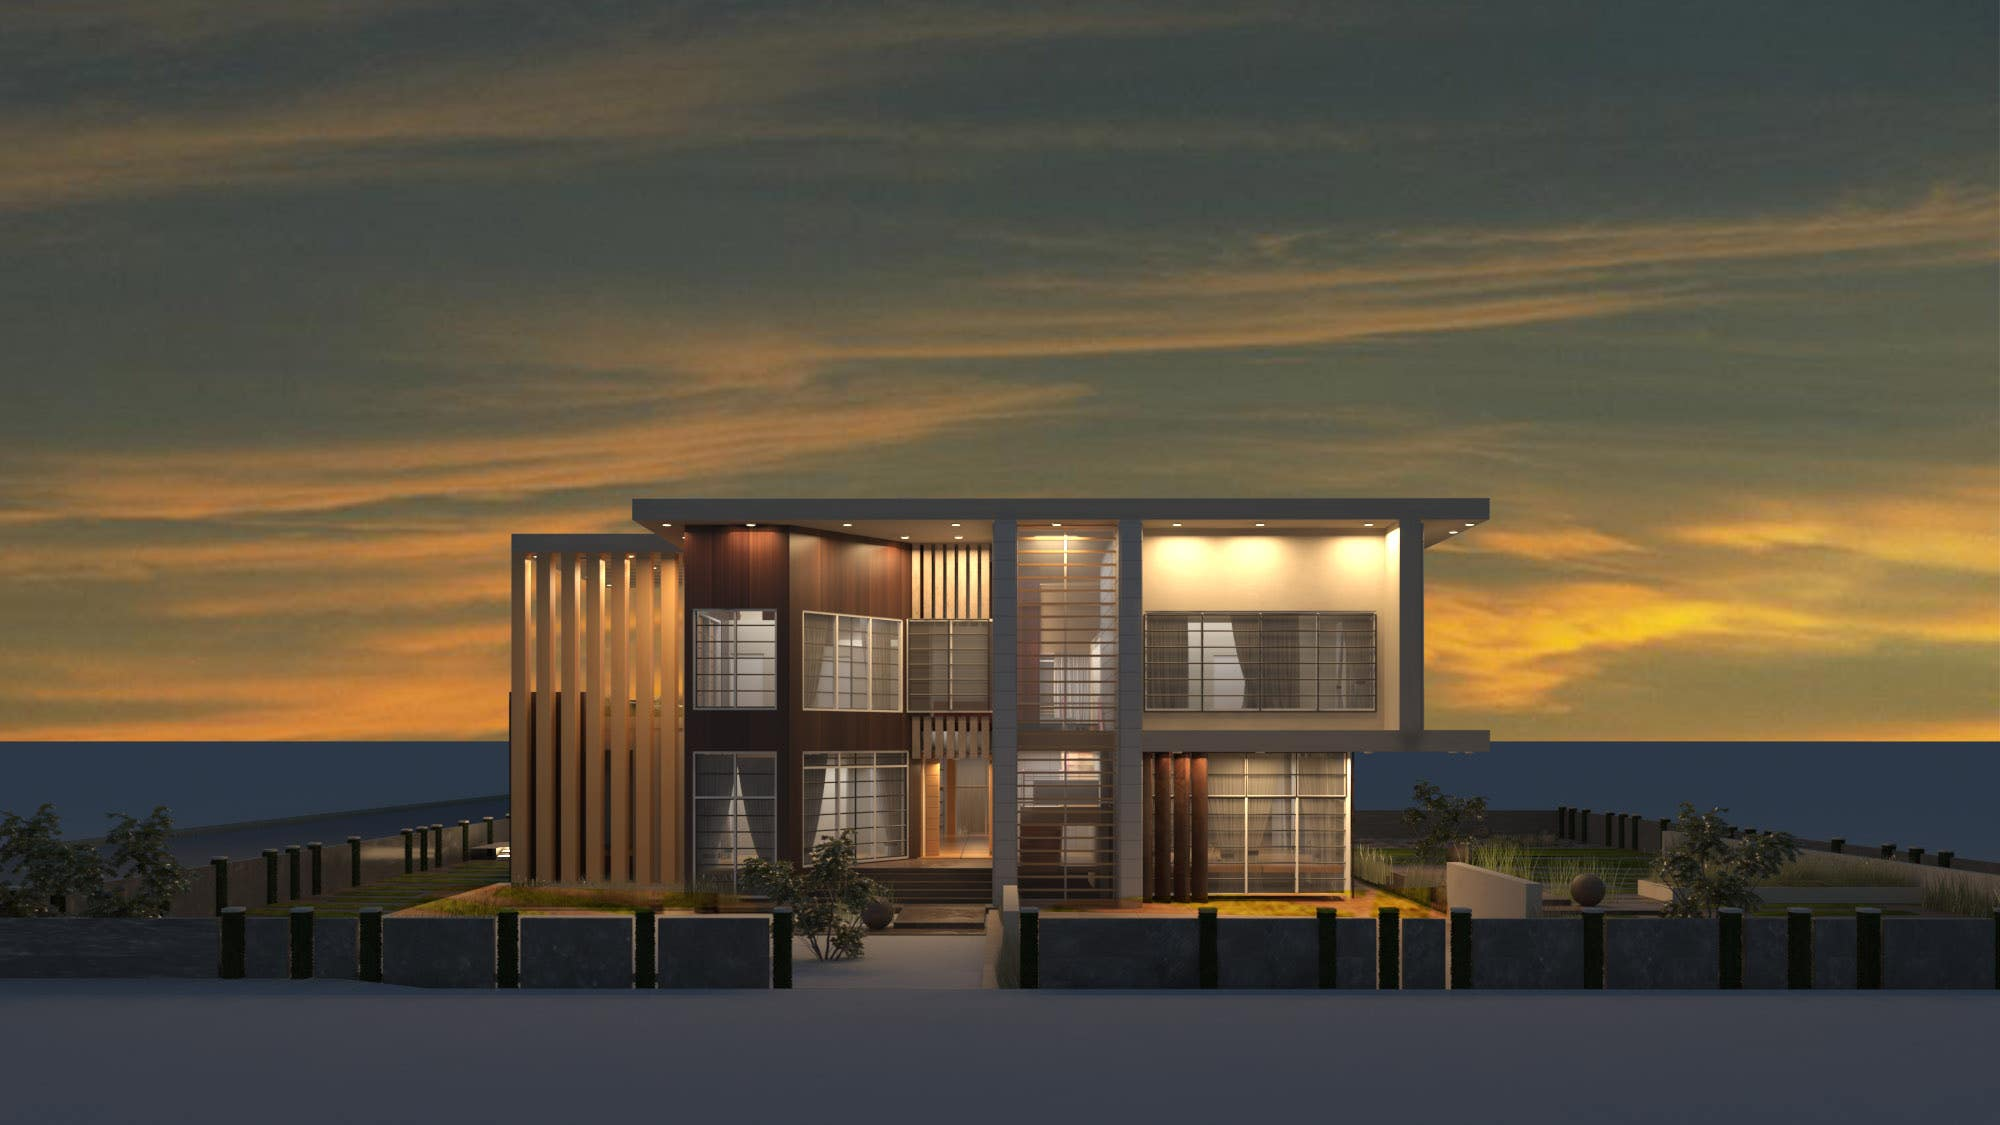 Visualizing a Modern Villa using 3Ds max and V-ray